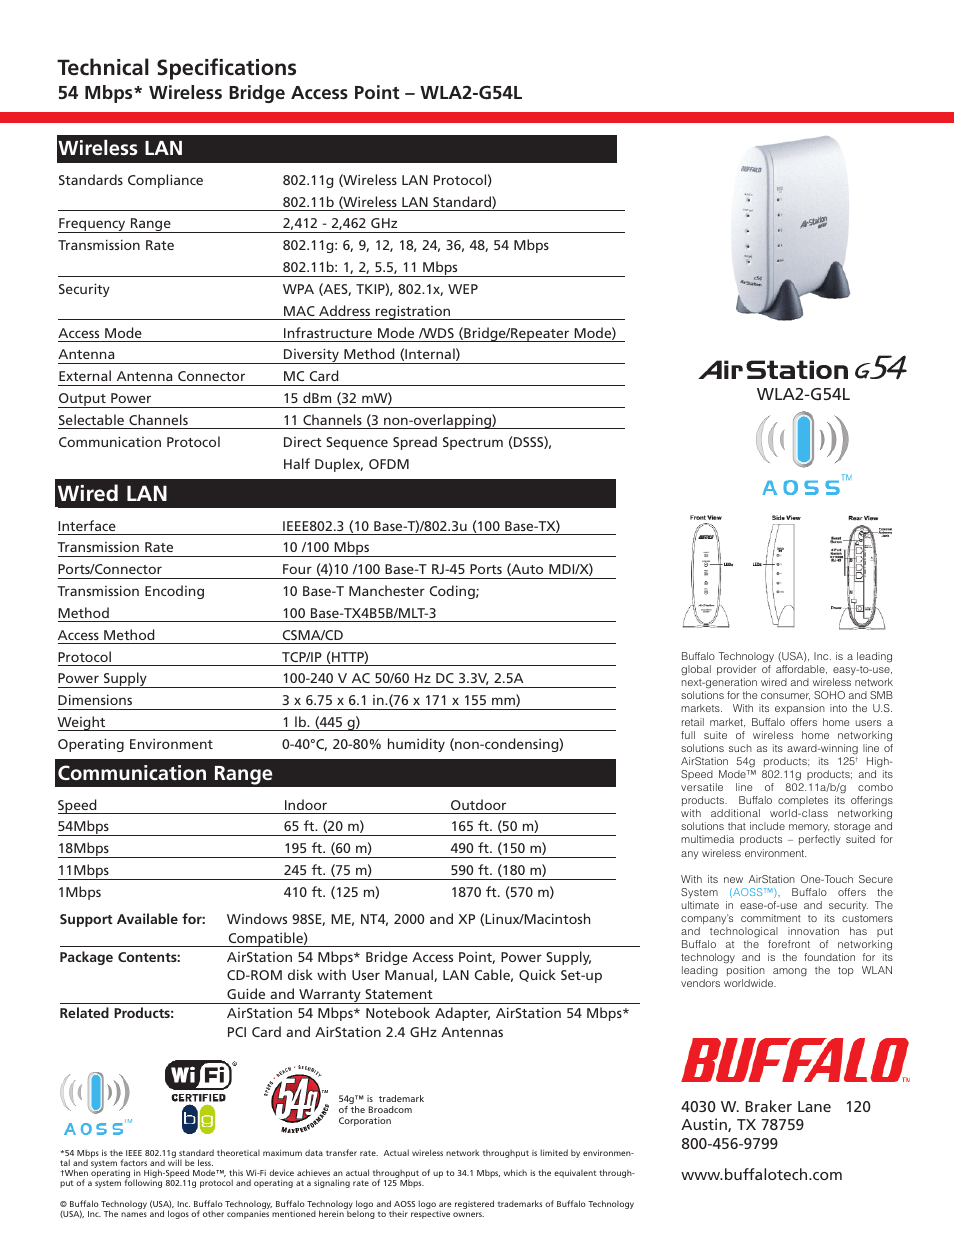 Wired lan, Technical specifications, Communication range